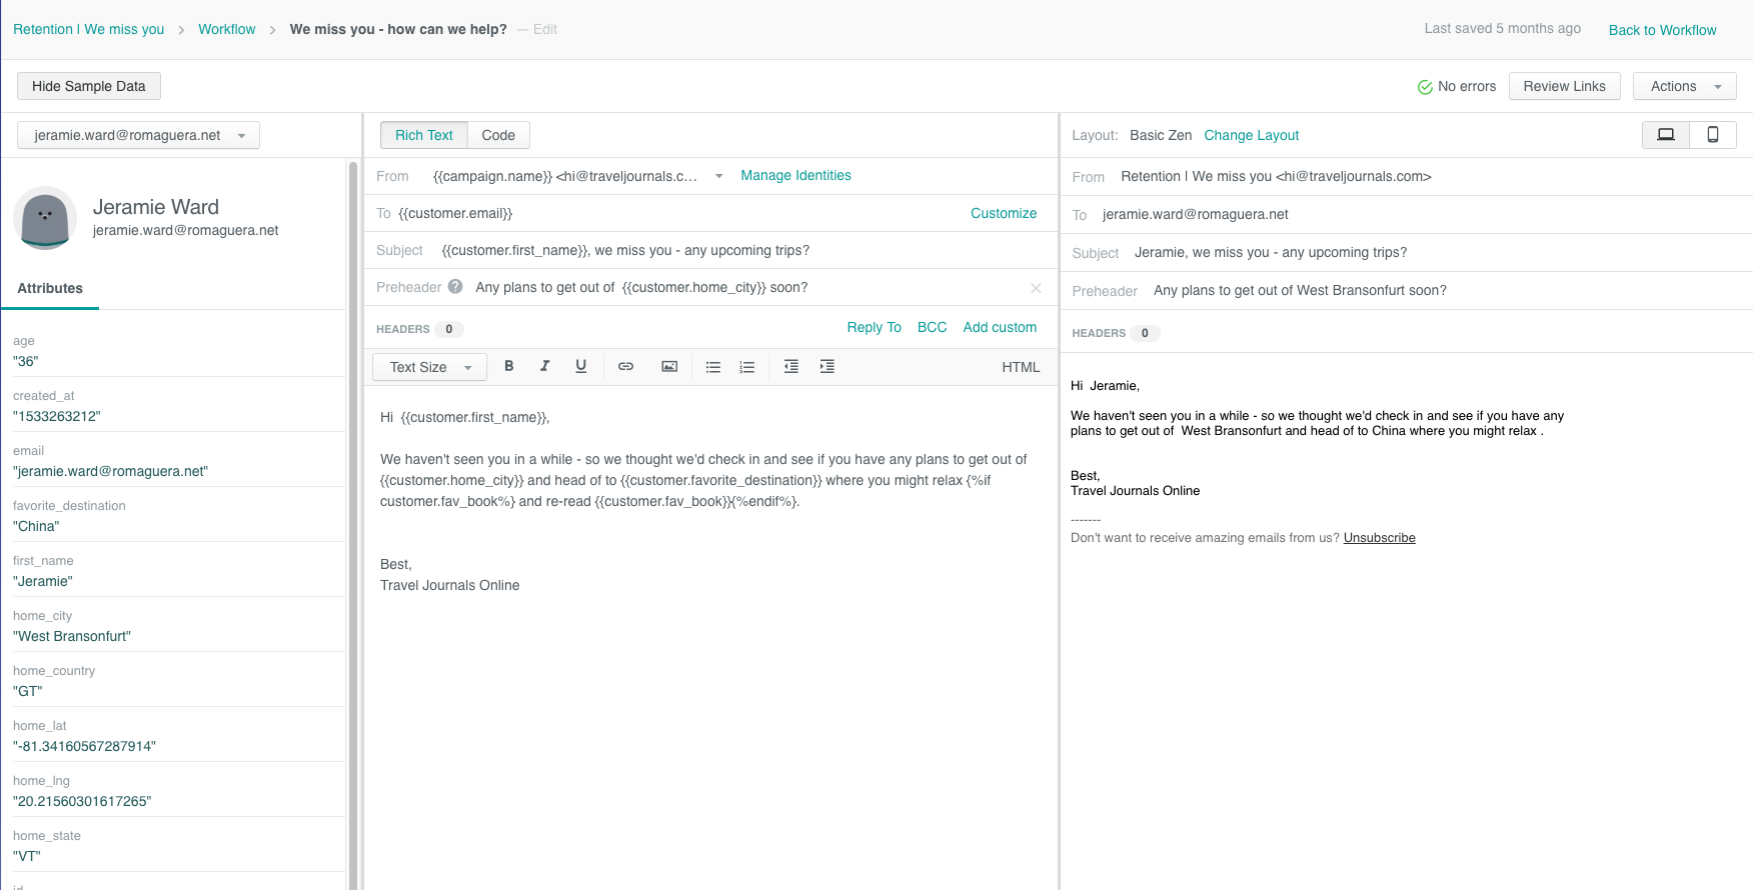 Use Liquid logic in Customer.io's email editor for powerful personalization options